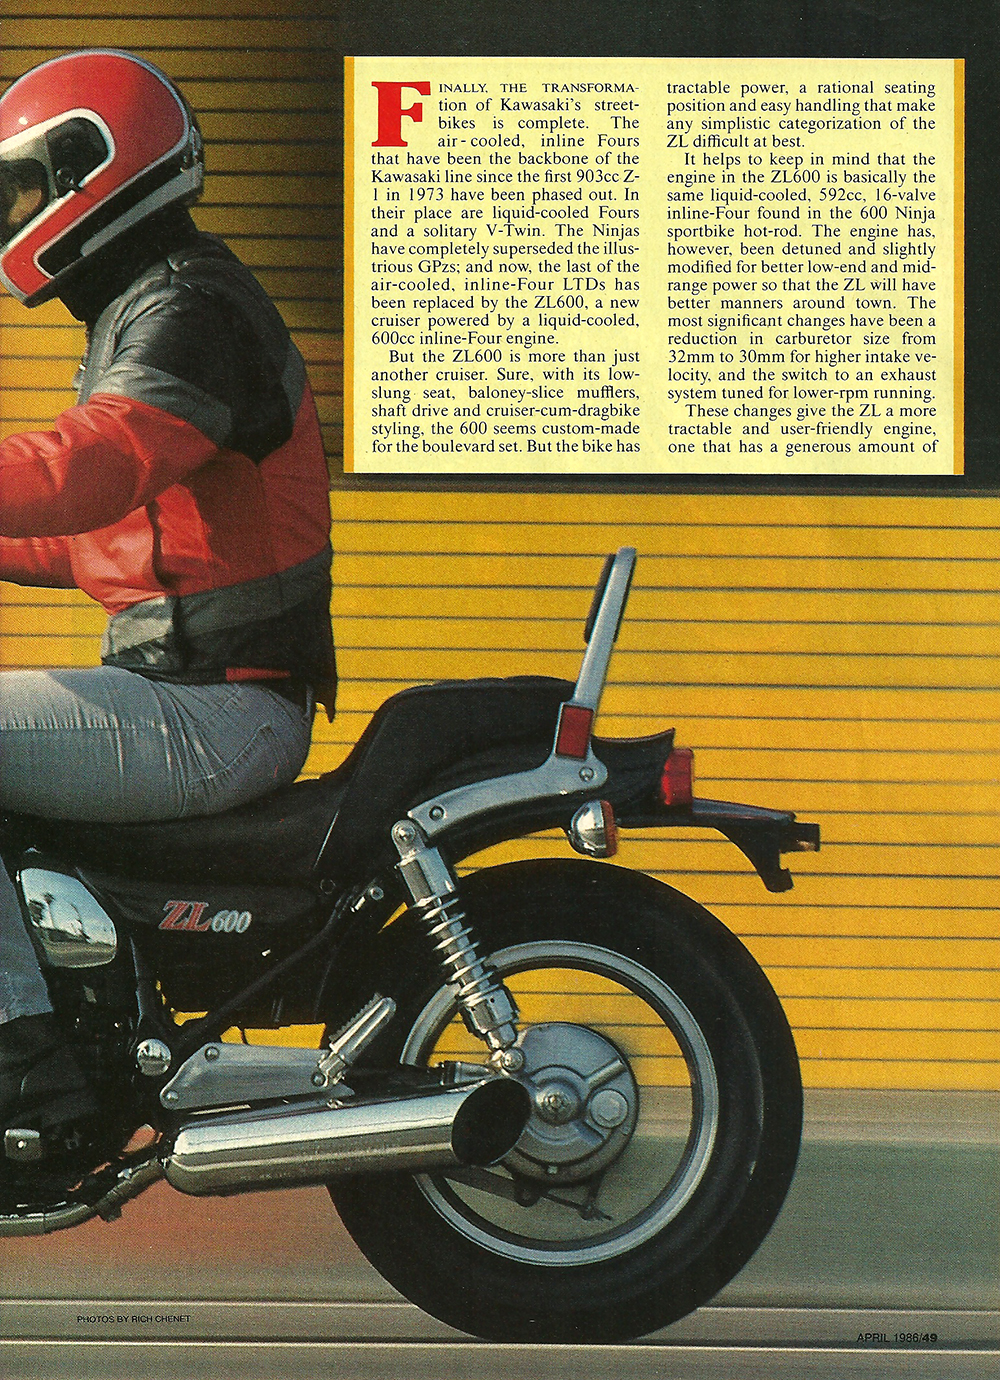 1986 Kawasaki ZL600 Eliminator road test 02.jpg